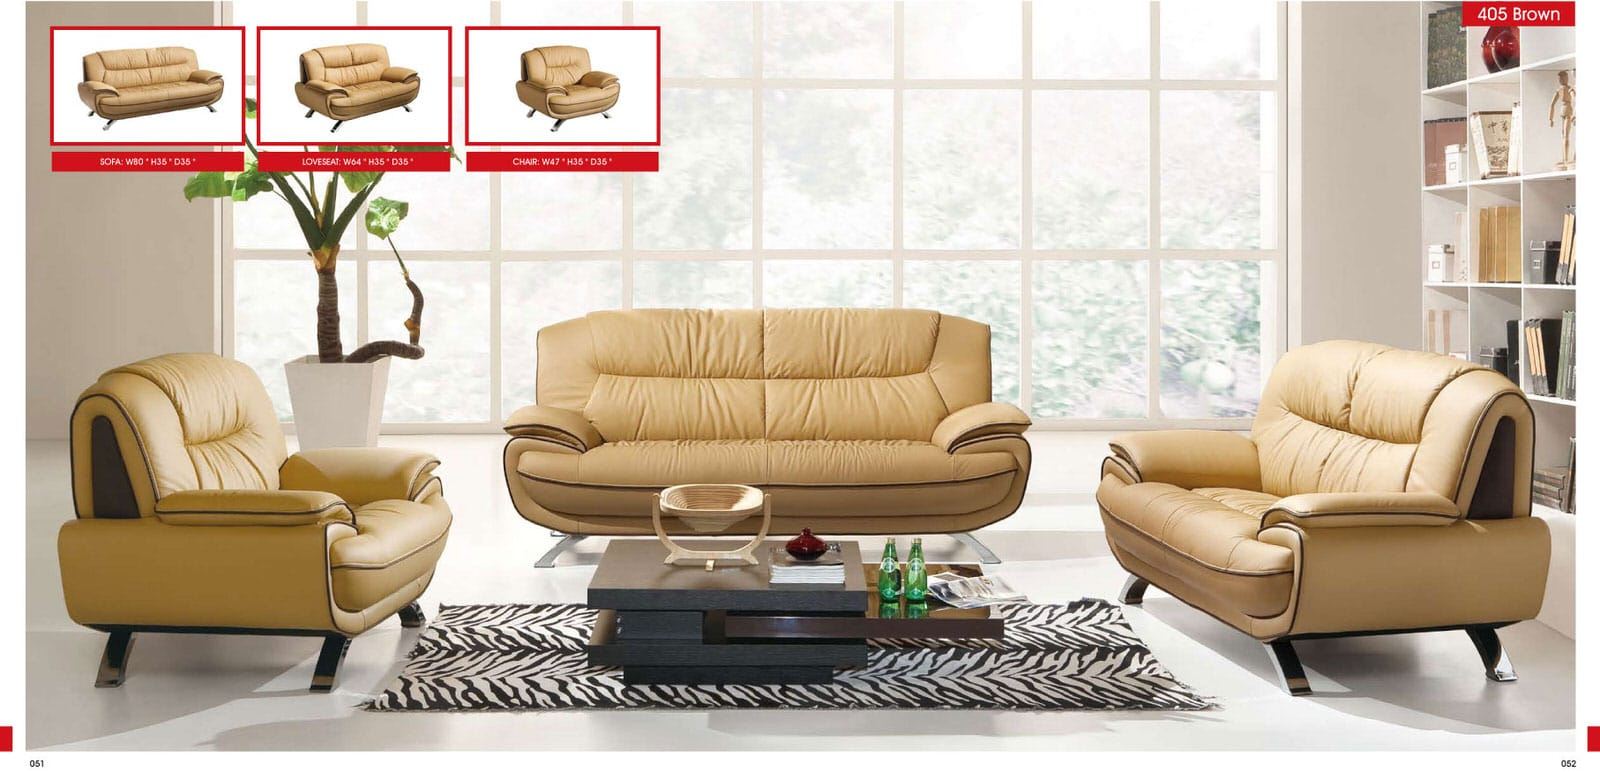 405 brown leather sofa set by esf Living room furniture images